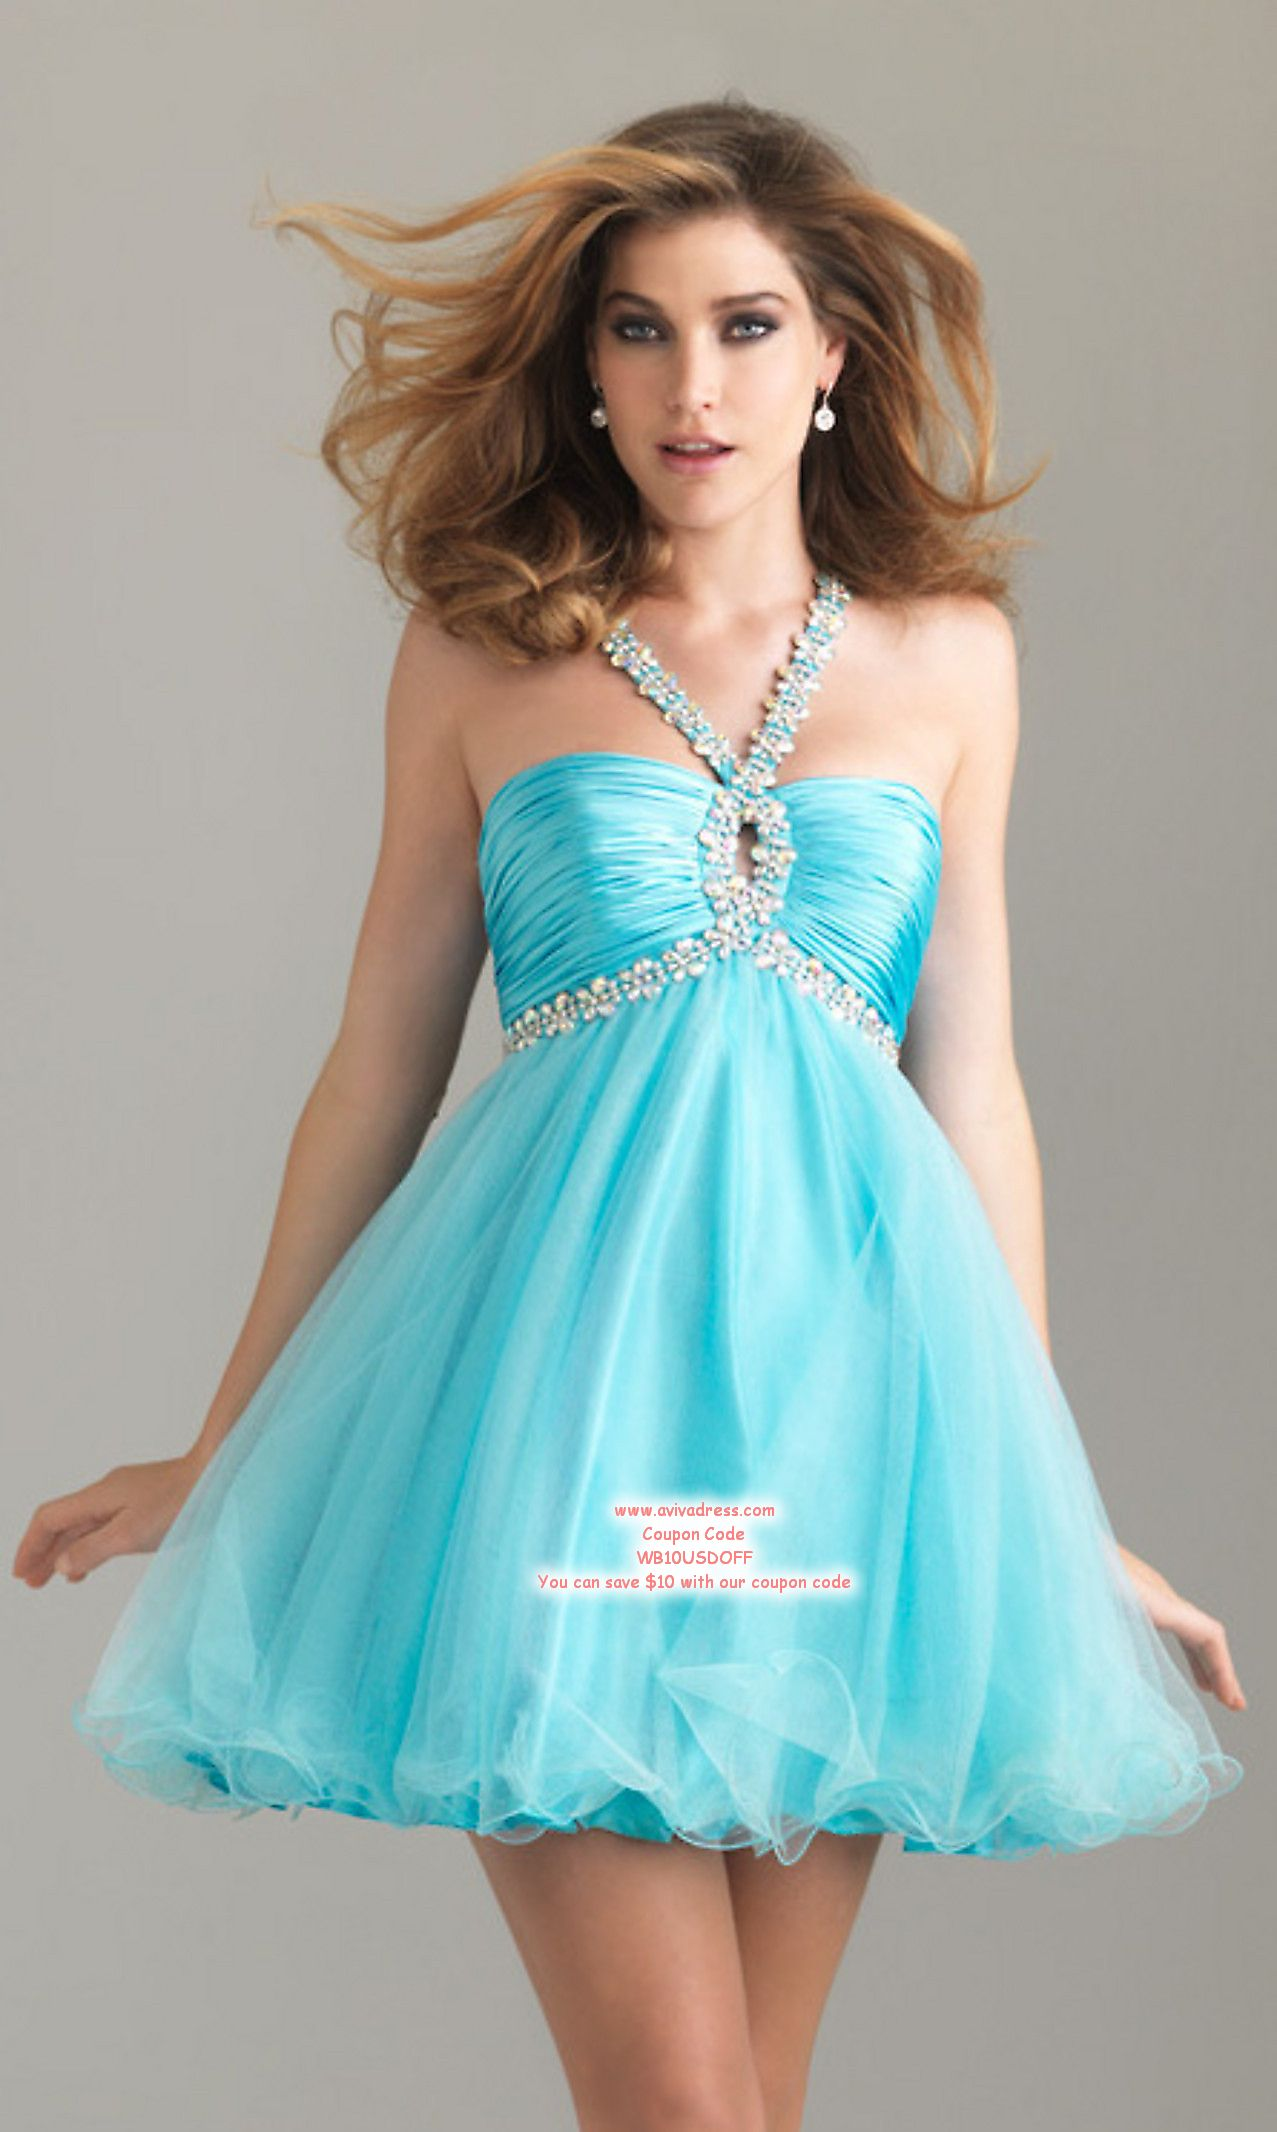 I would love to wear this for the HUGE 8th grade dance next spring ...